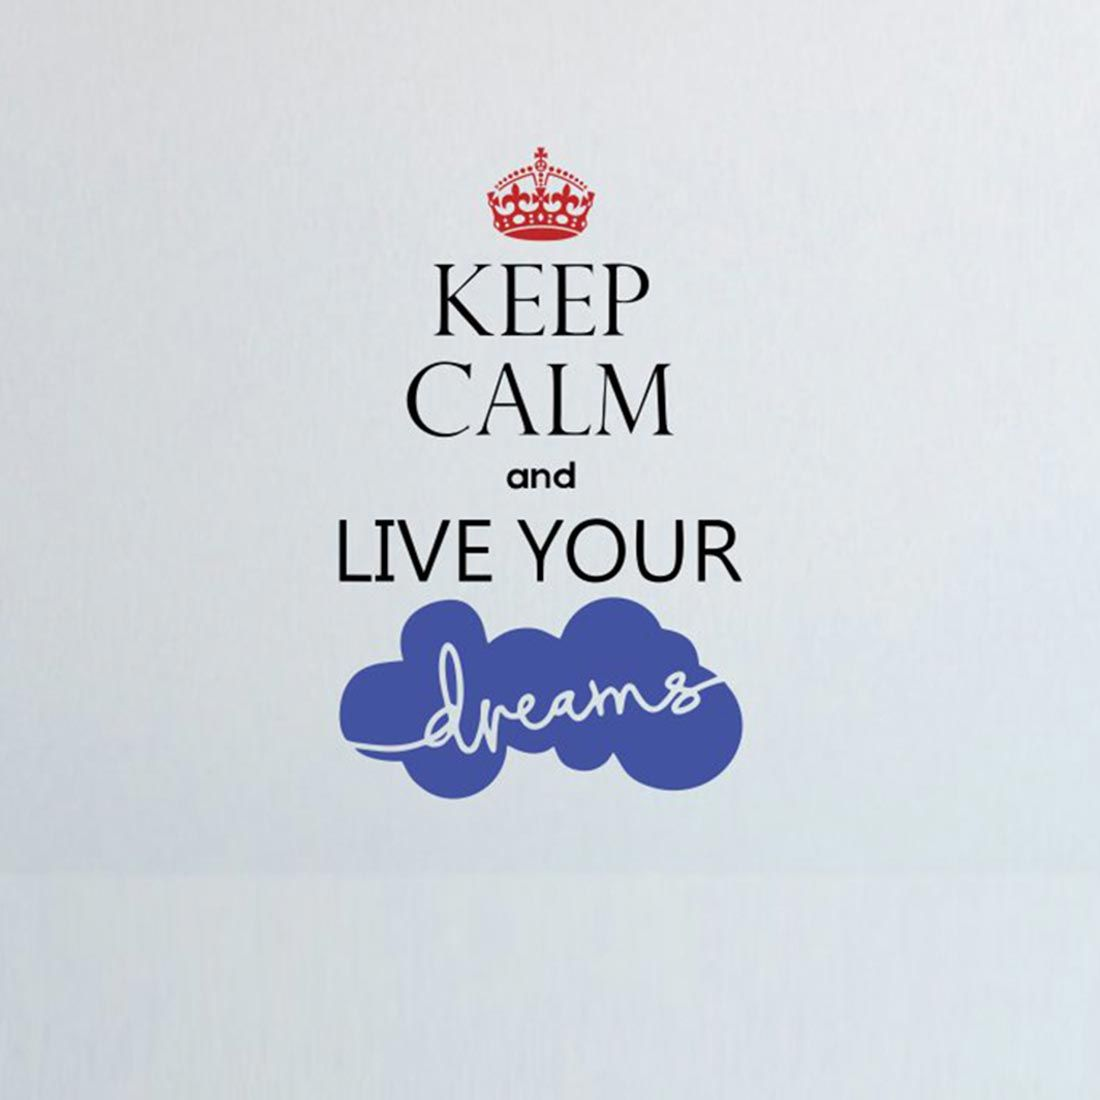 Keep Calm Quotes Live Your Dreams